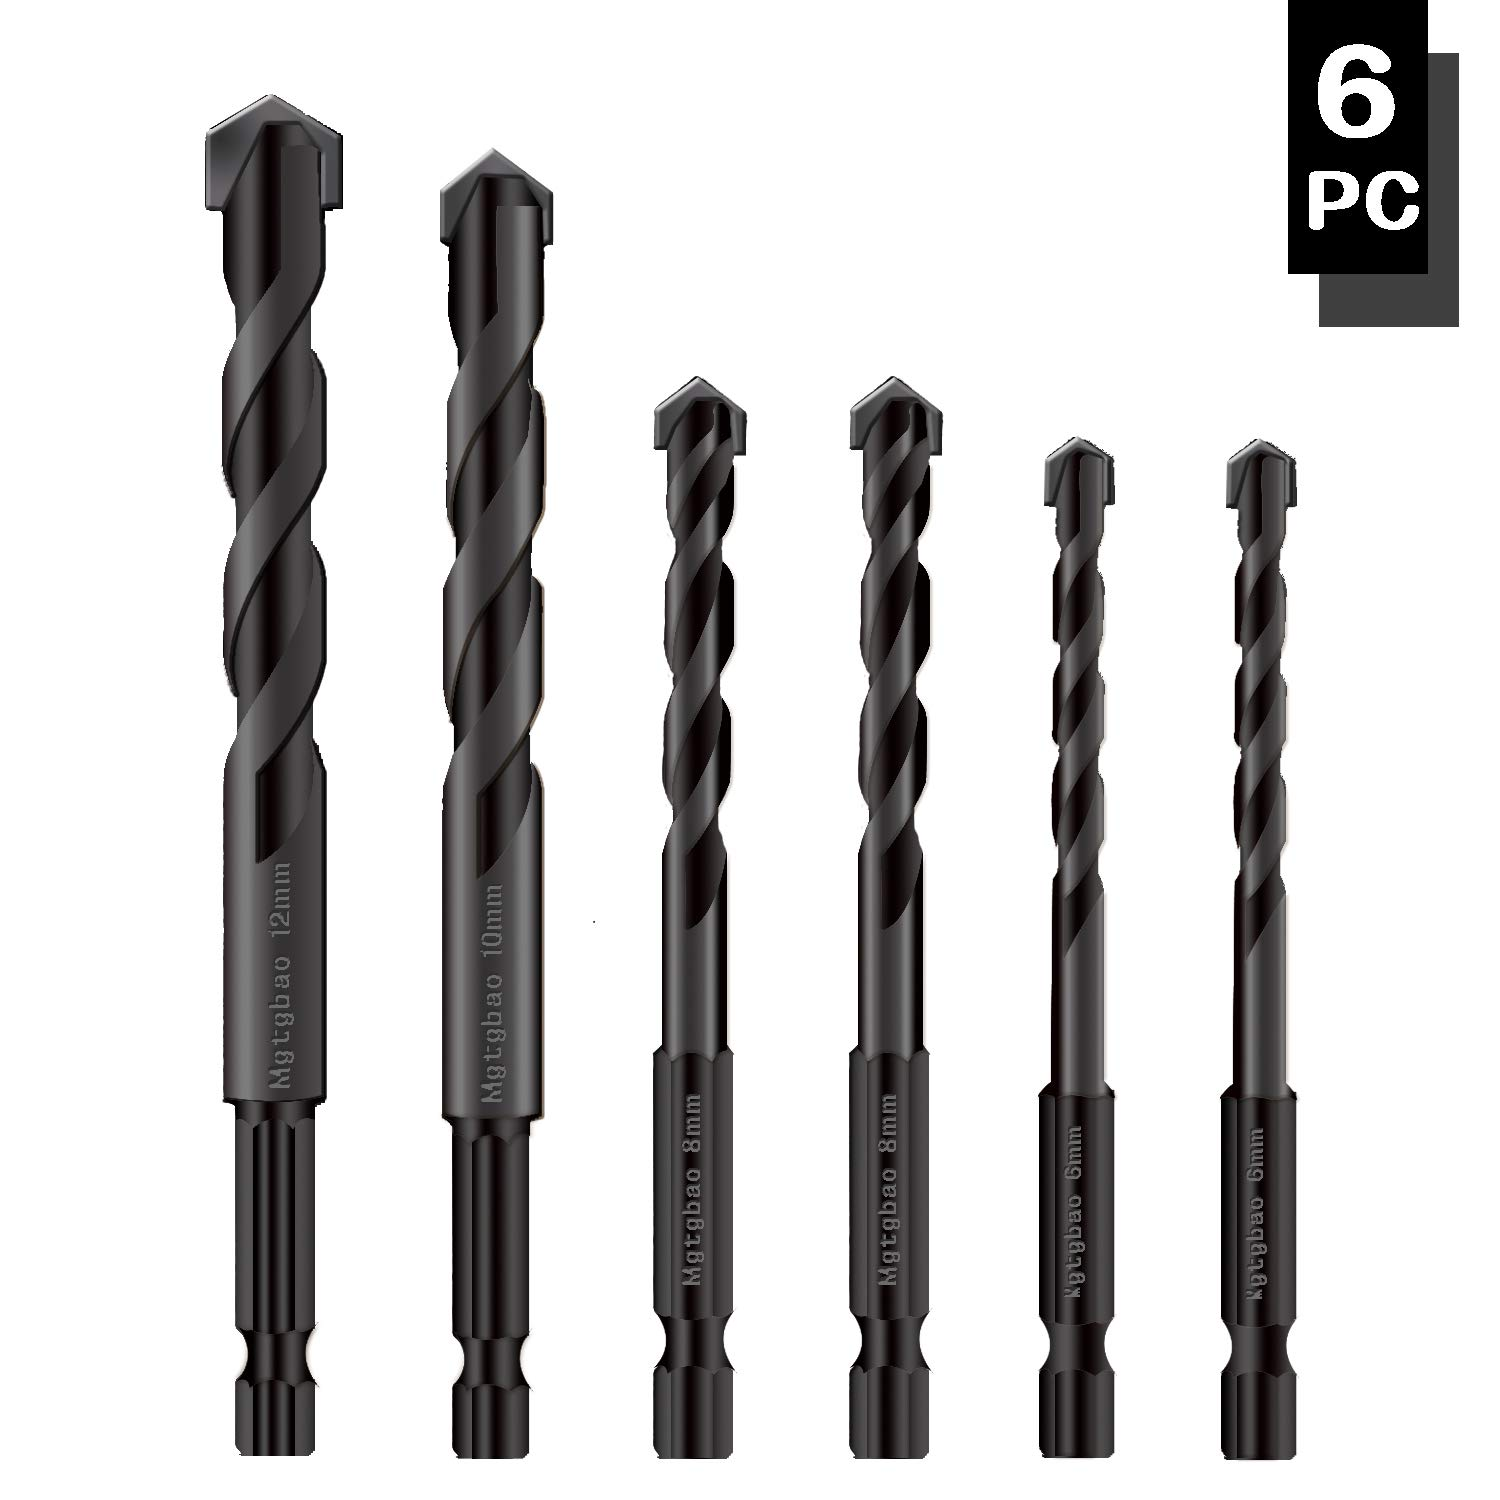 【2020 neu Type】6Pcs Black Masonry Drill Bits Set, Mgtgbao Ceramic Tile Drill Bits Carbide Tip für Glass, Brick, Tile, Concrete, Plastic und Wood mit Size 6, 6, 8, 8,10,12Mm.